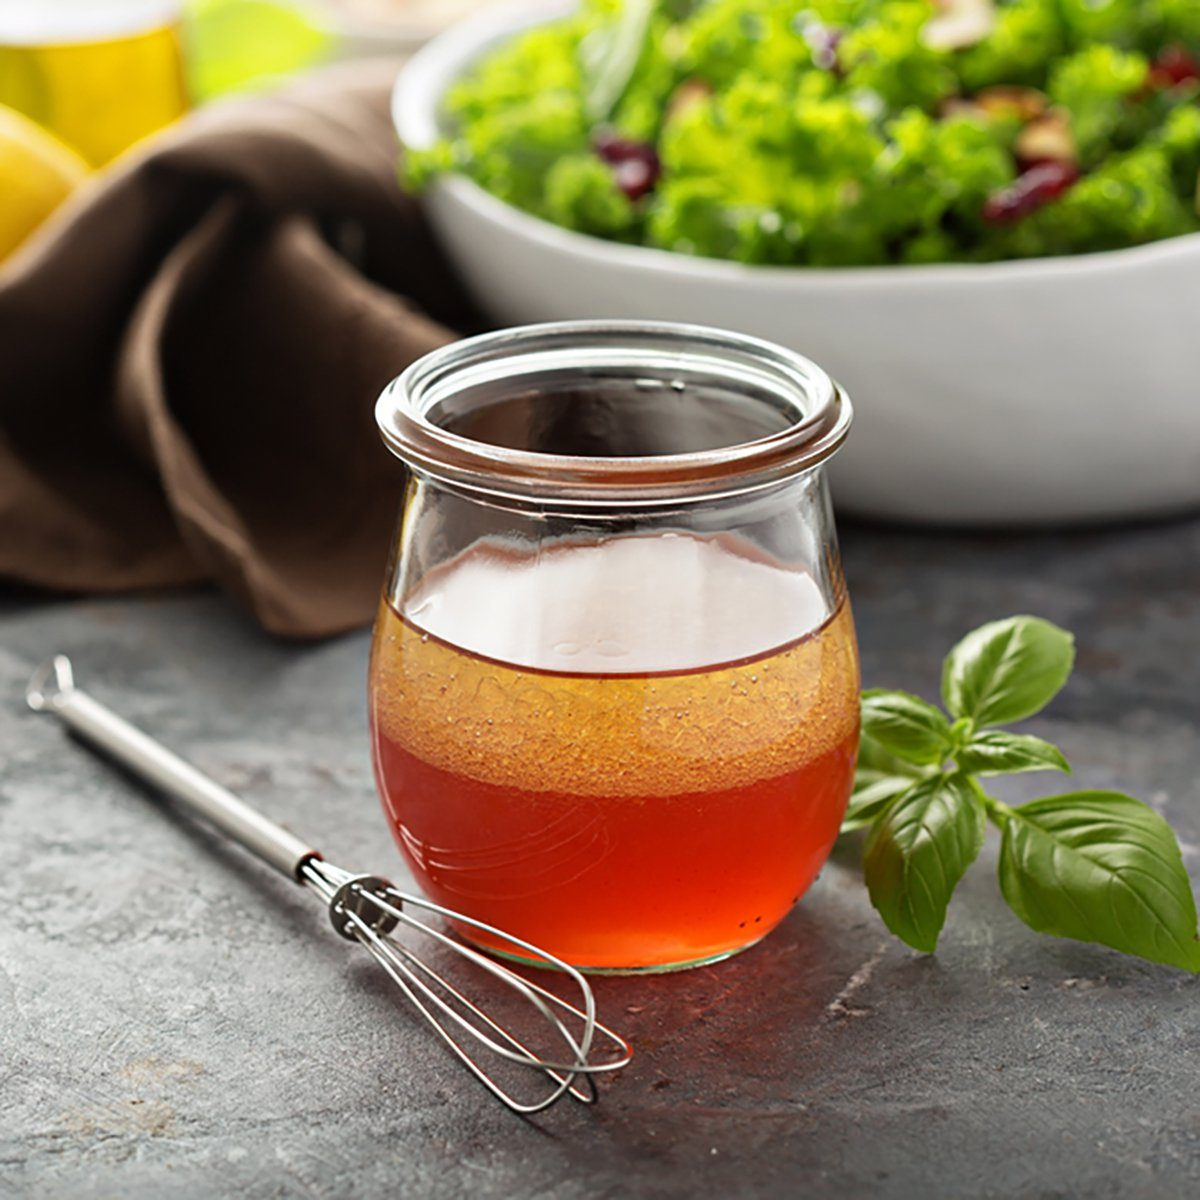 Homemade salad dressing vinaigrette with raspberry and pomegranate juice